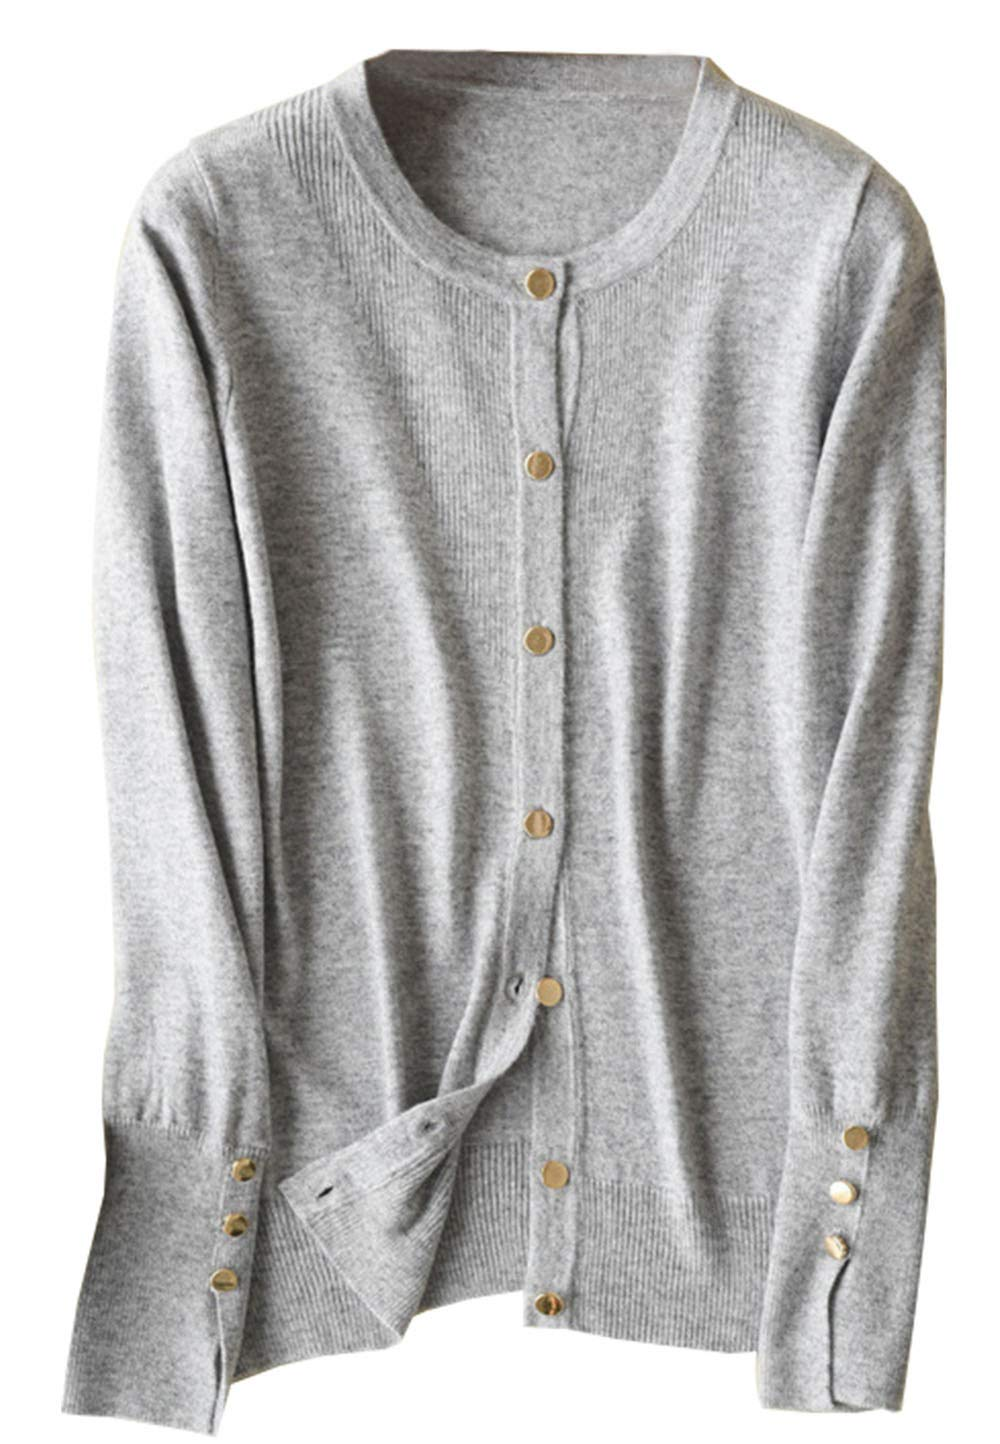 Womens Cashmere Blend Crewneck Button Down Knit Petite Fashion Cosy Cropped Crochet Cardigan Sweater Tops Knitwear Light Grey US 10